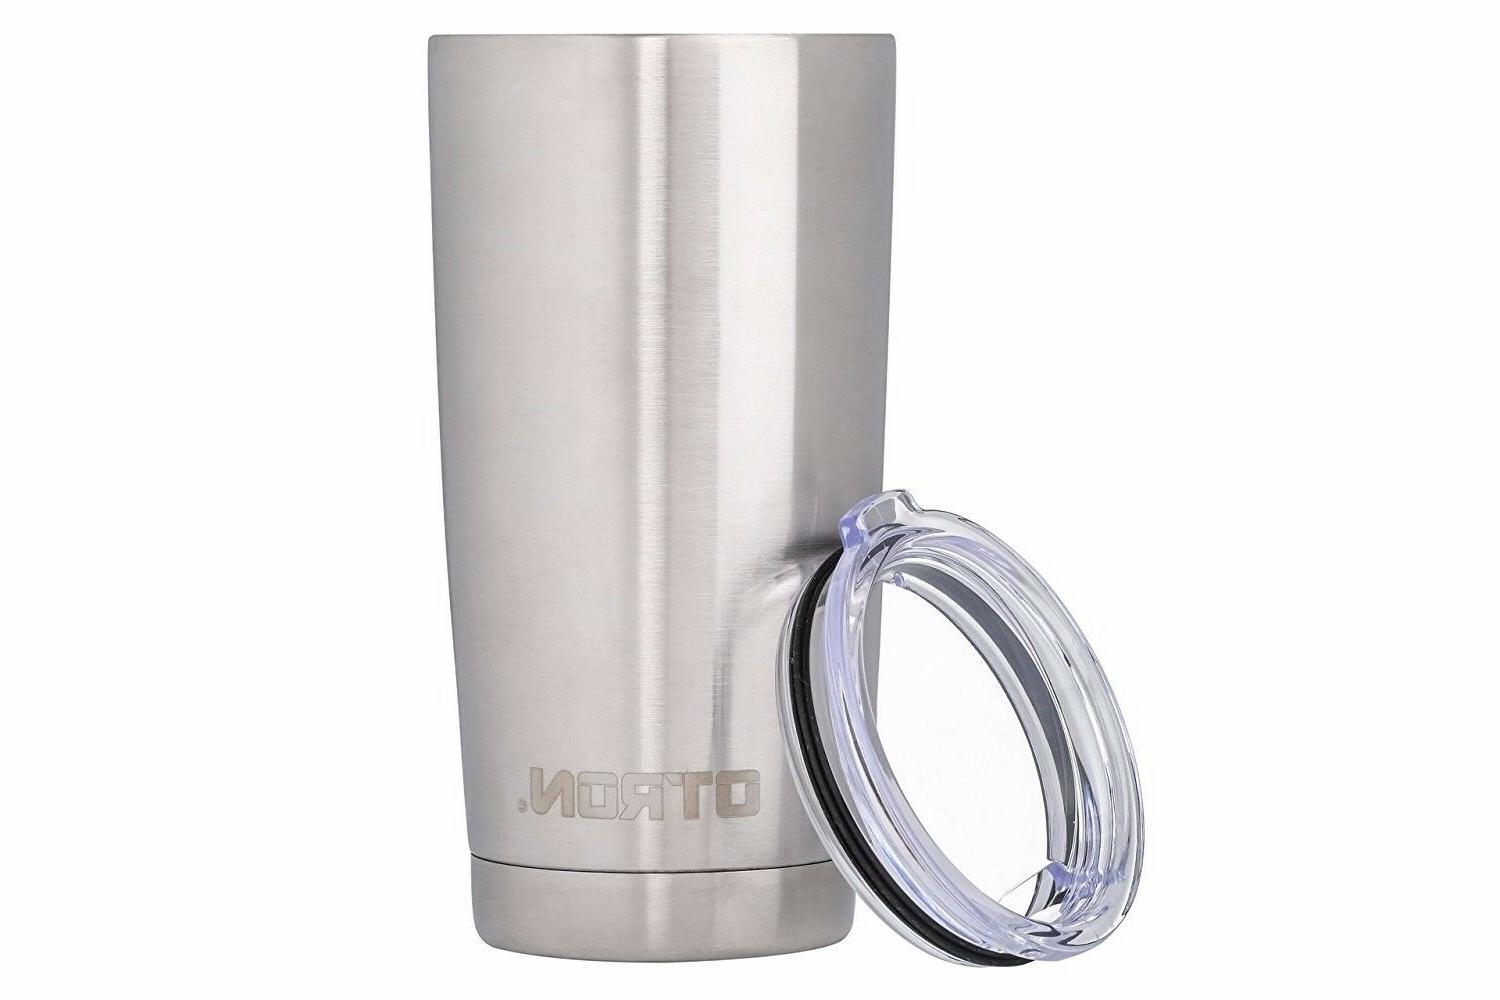 tumbler double wall vacuum insulated stainless steel